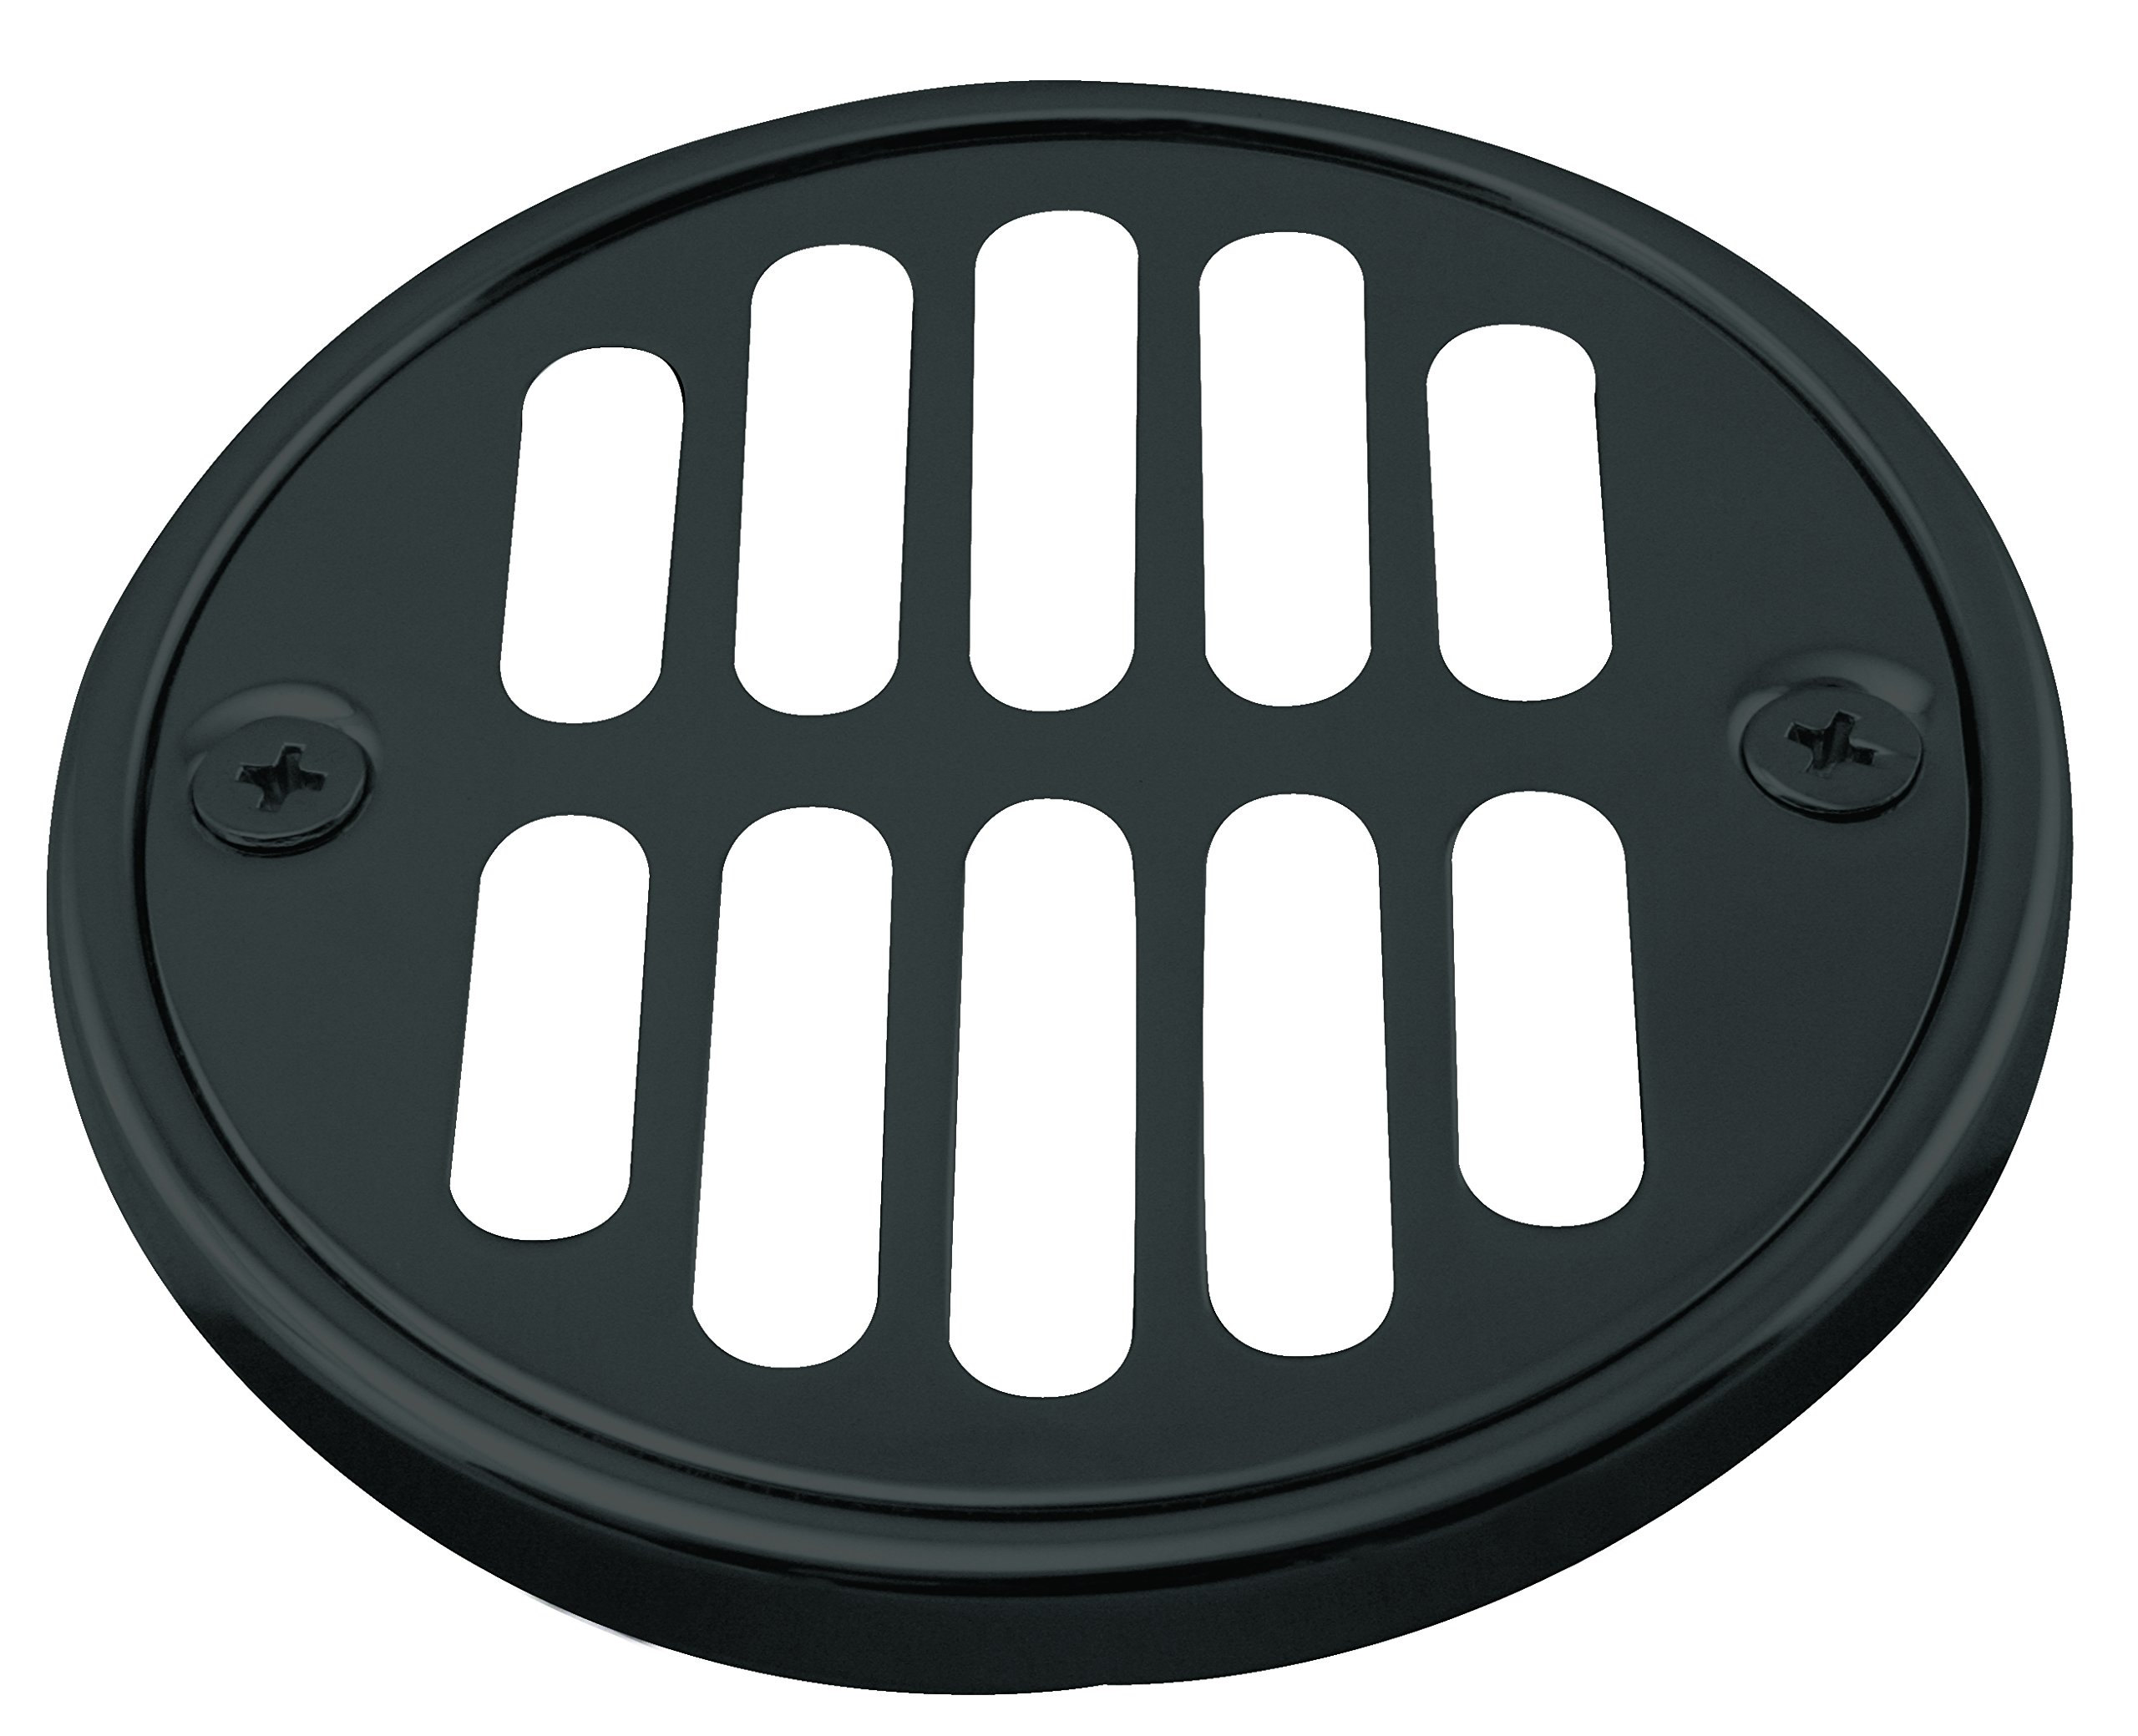 Westbrass Shower Strainer Set with Screws, Grill and Crown, Matte Black, D312-62